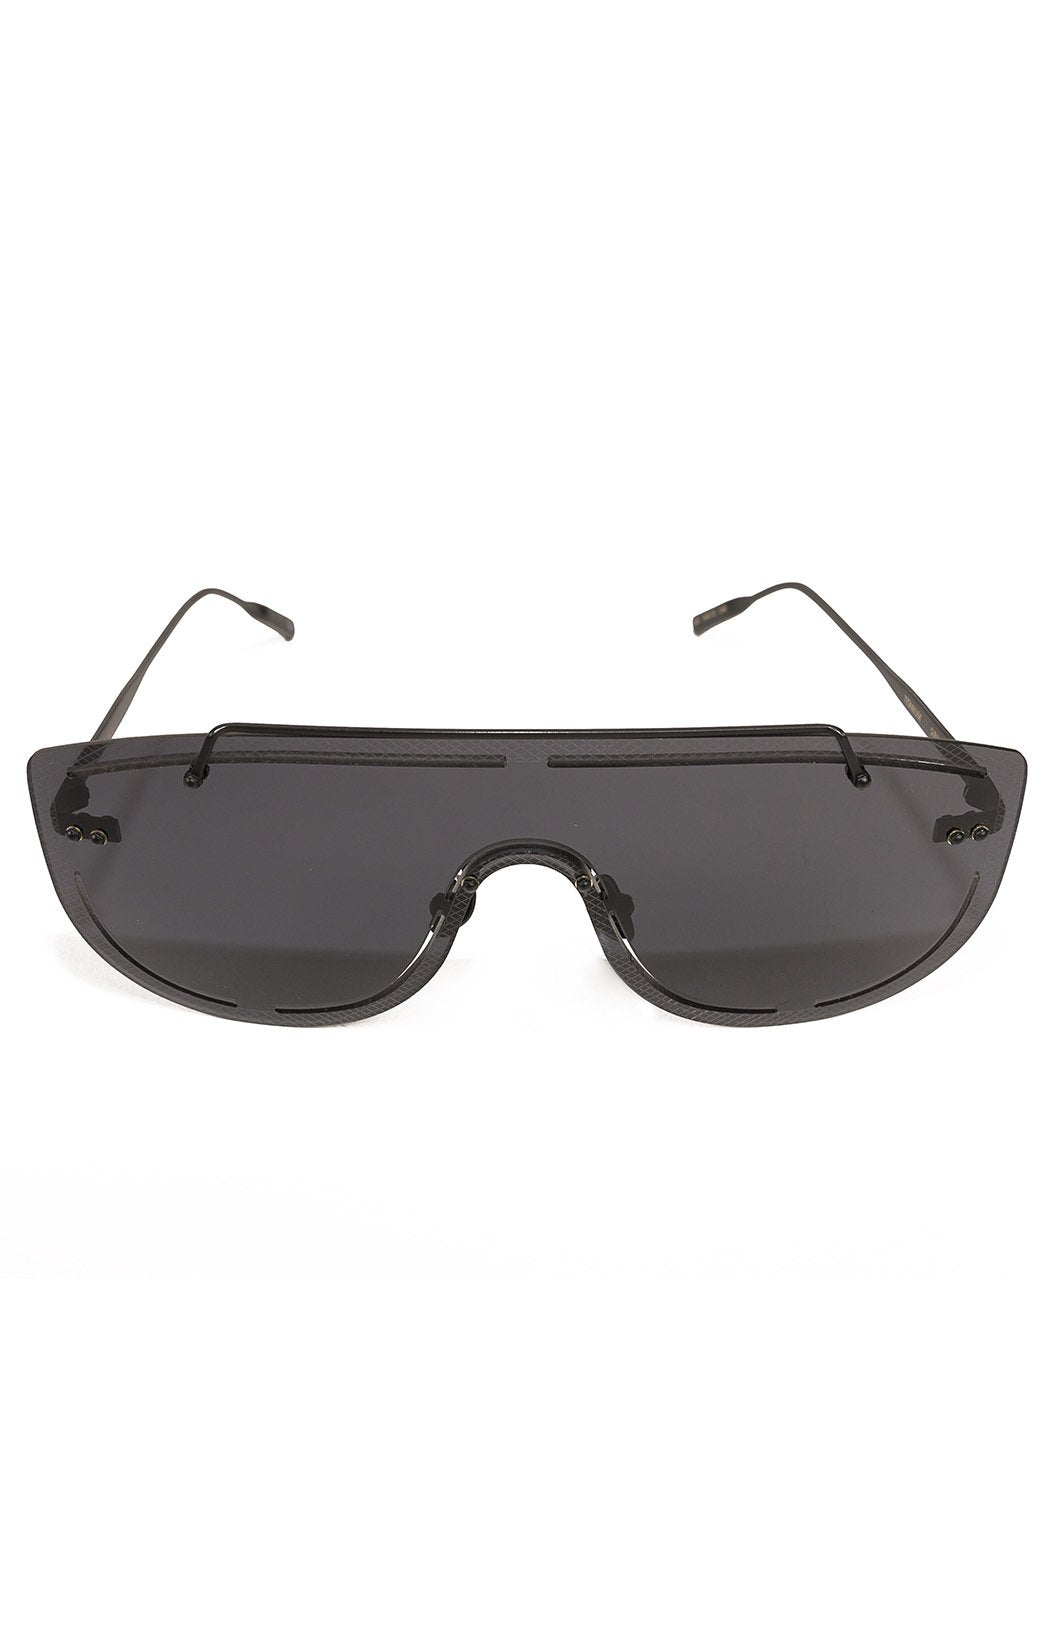 "Front view of AMAVII Sunglasses Size: W-6"" x H-2.25"""